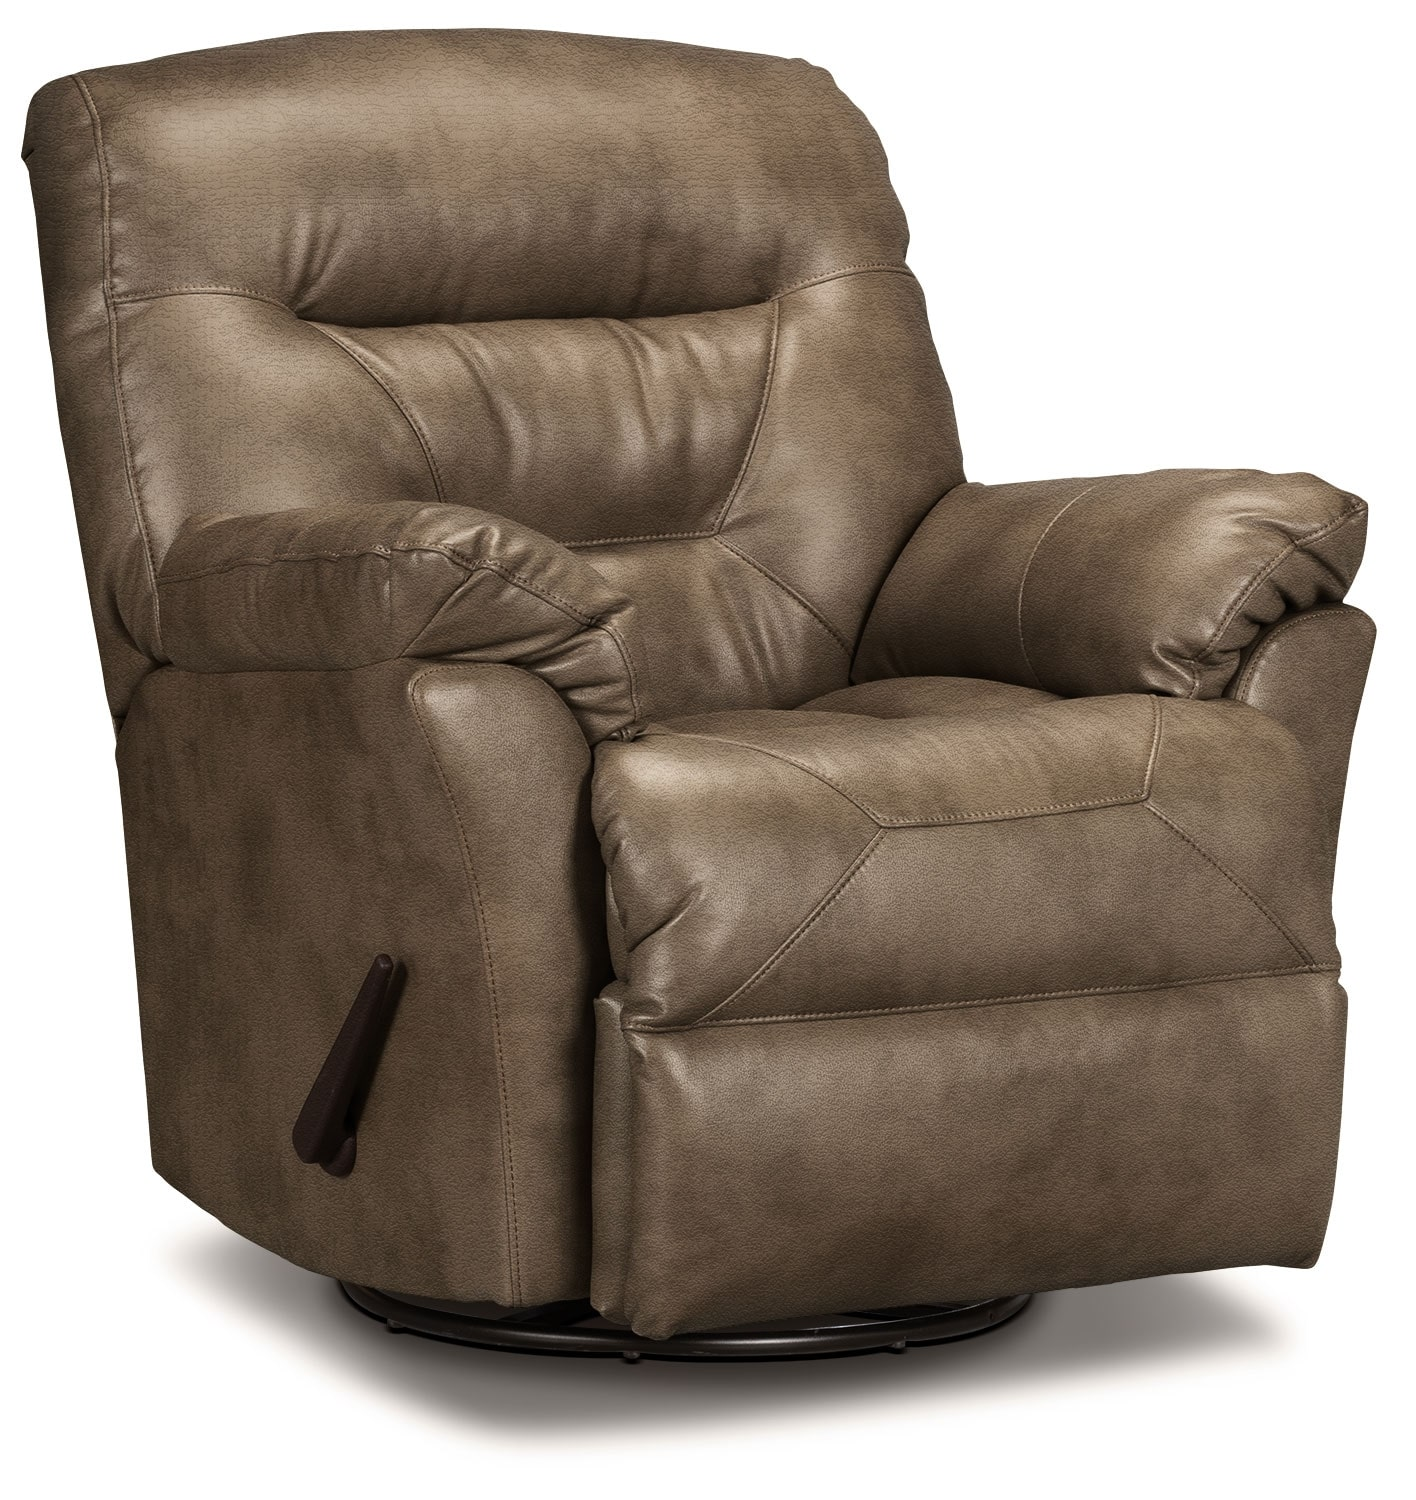 Designed2B Recliner 4579 Leather-Look Fabric Swivel Glider Recliner - Tobacco